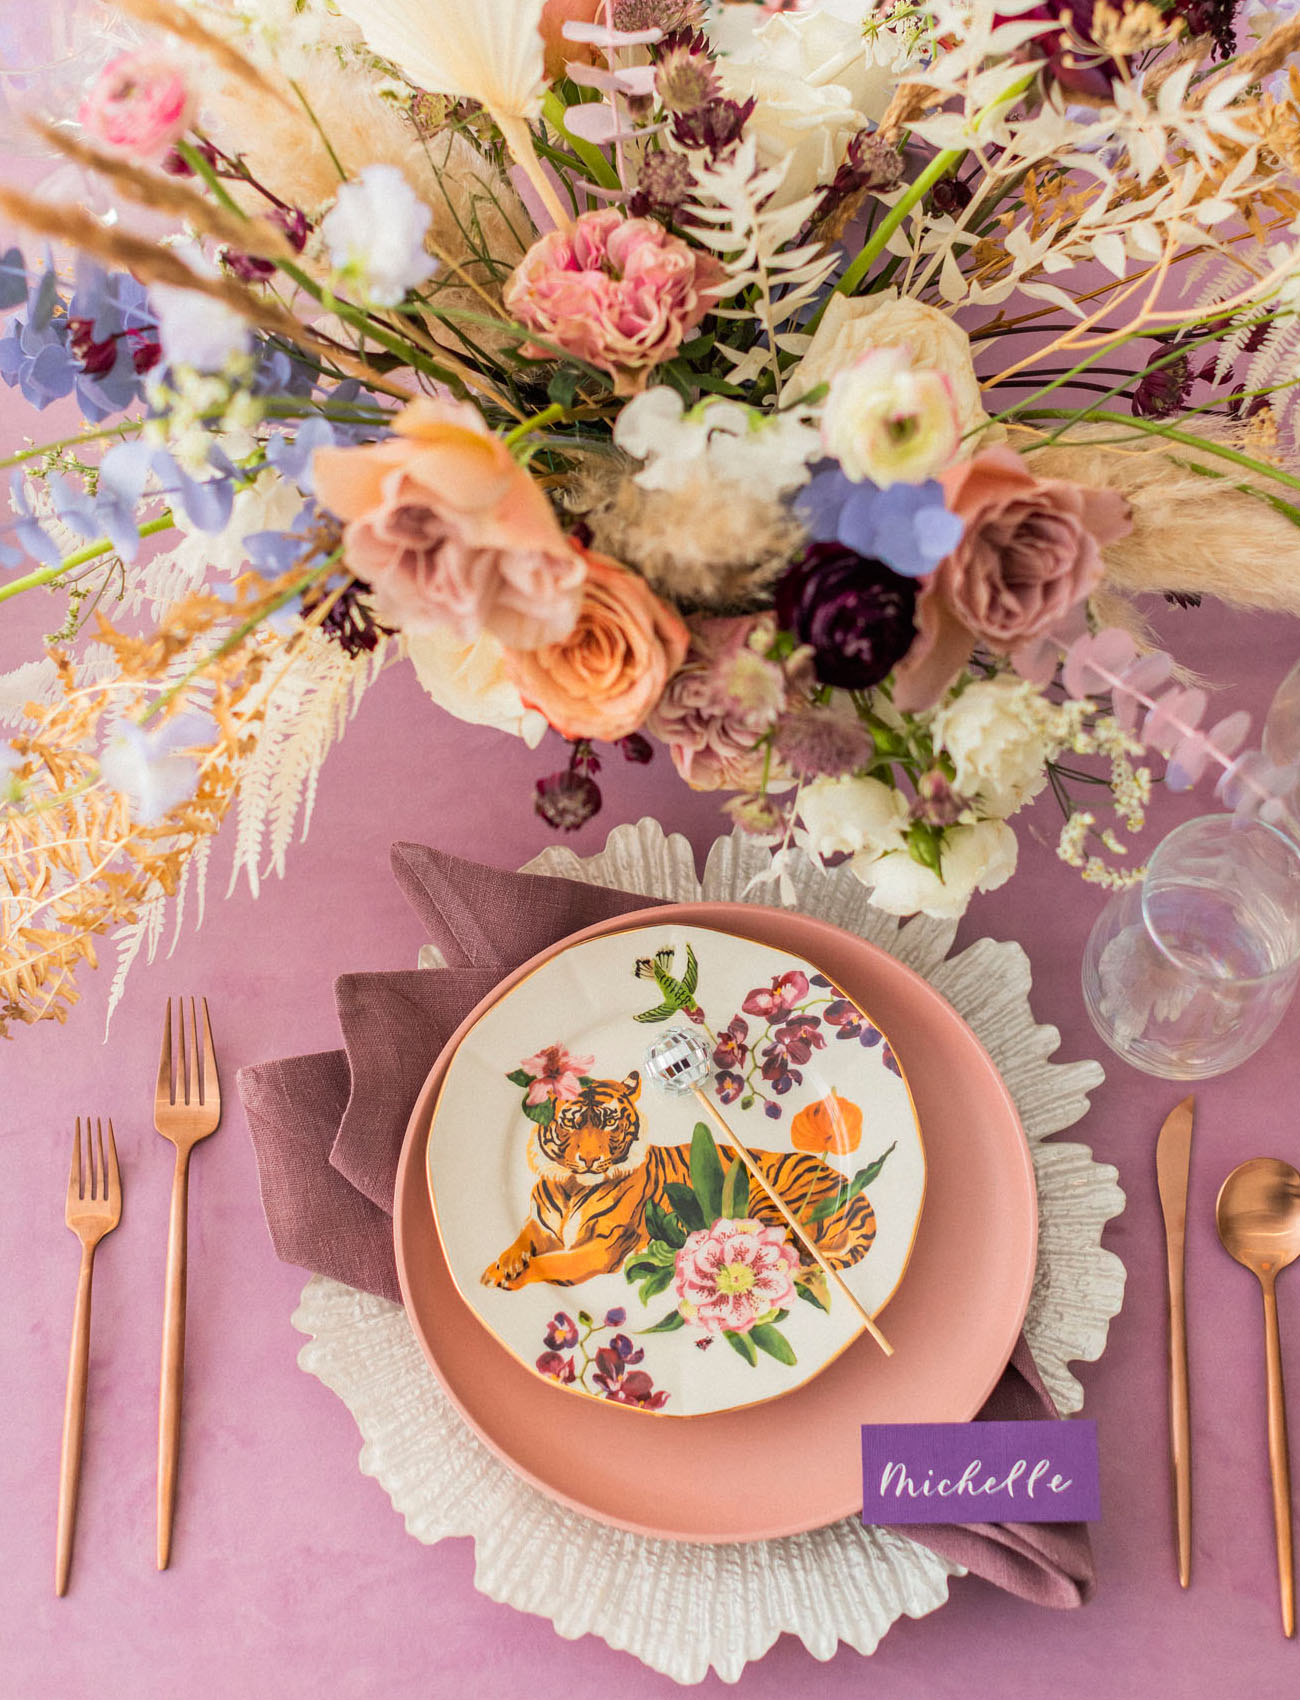 Those textures and a printed plate plus linens really created  a mood at the table